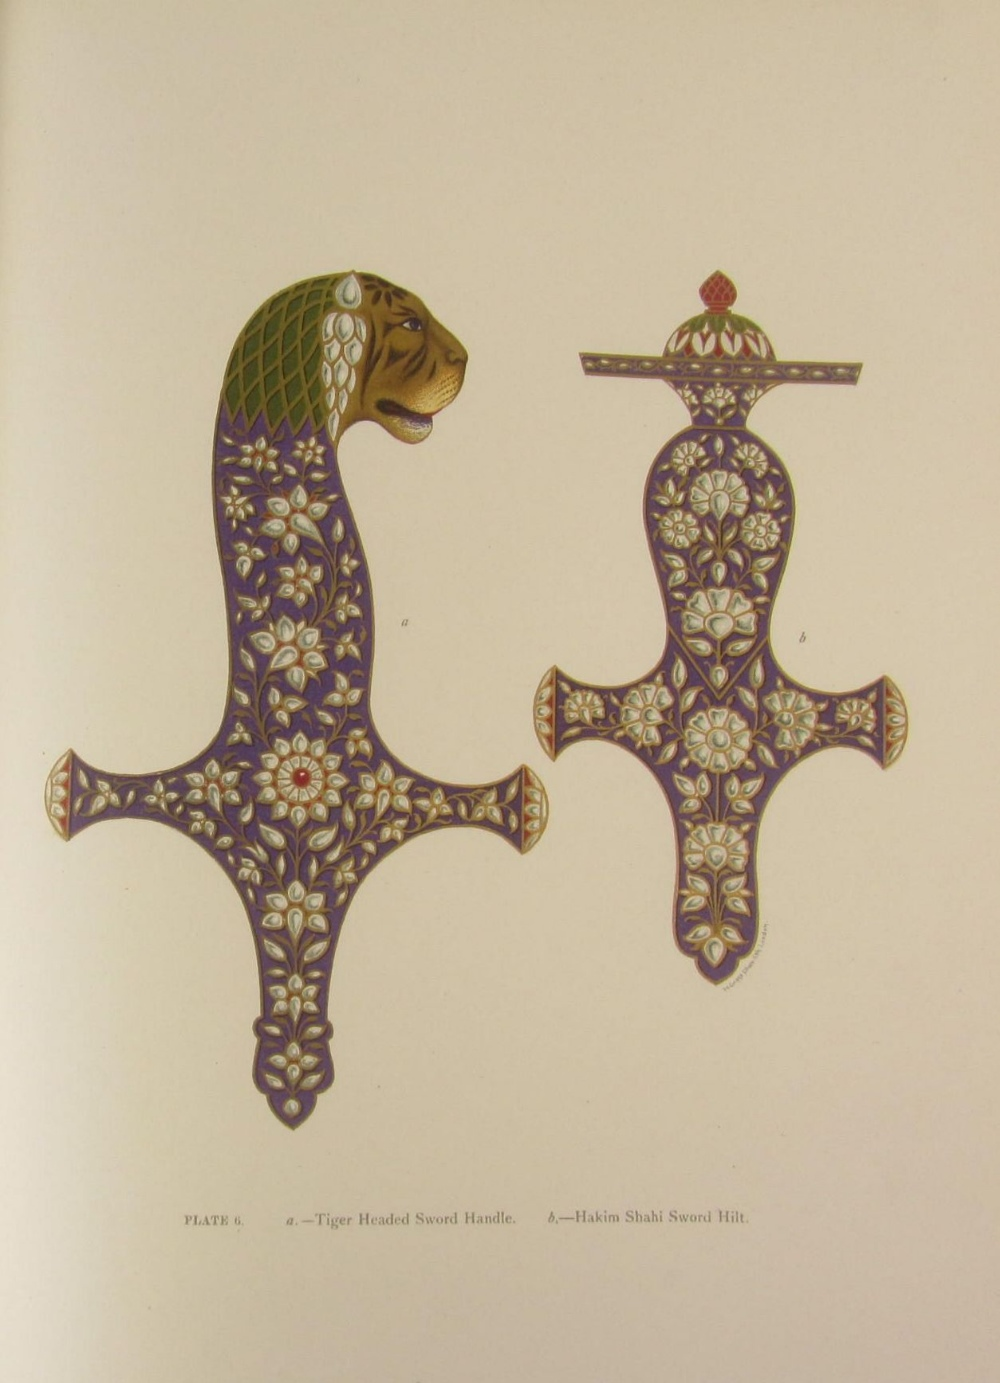 Jacob, S.S. and T.H. Hendley  Jeypore enamels. London: W. Griggs, 1886. Folio, 28 chromolithographed - Image 3 of 7